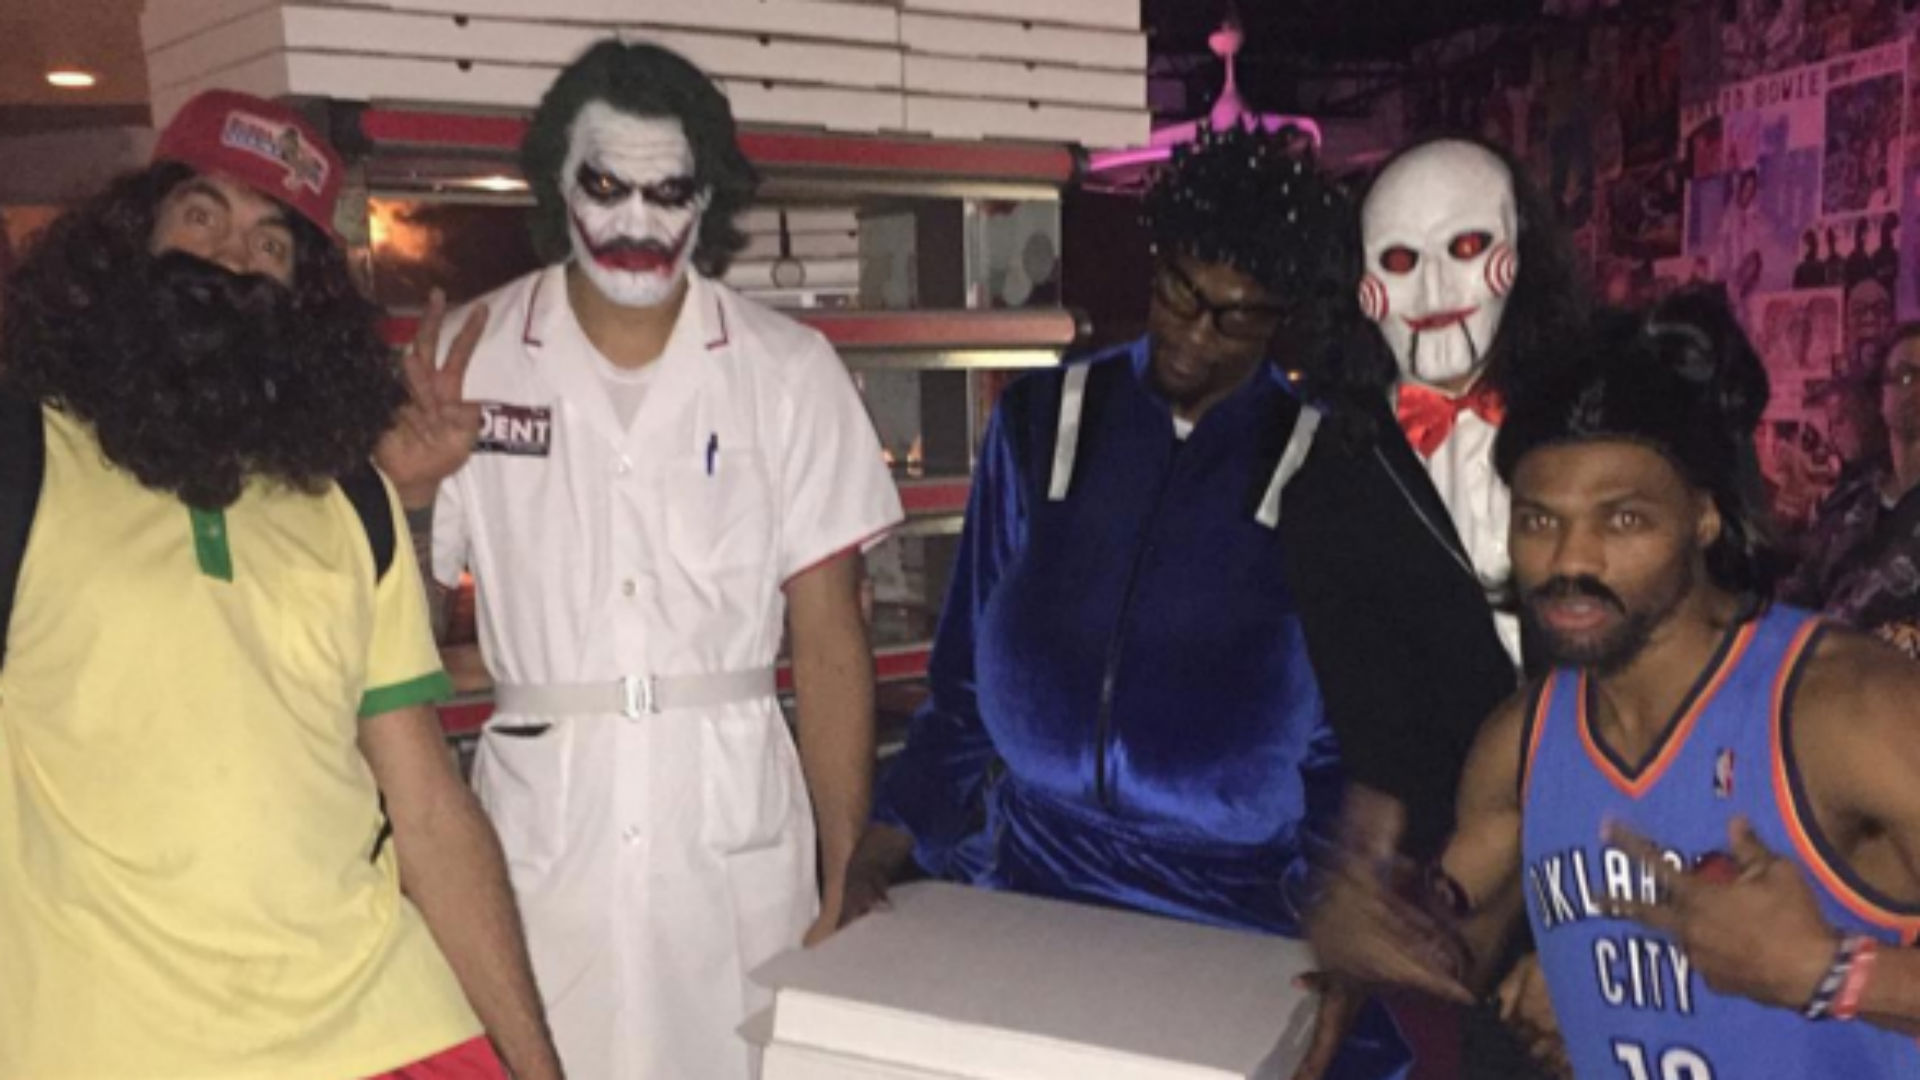 Thunder players wear freaky costumes to Halloween party | Other ...